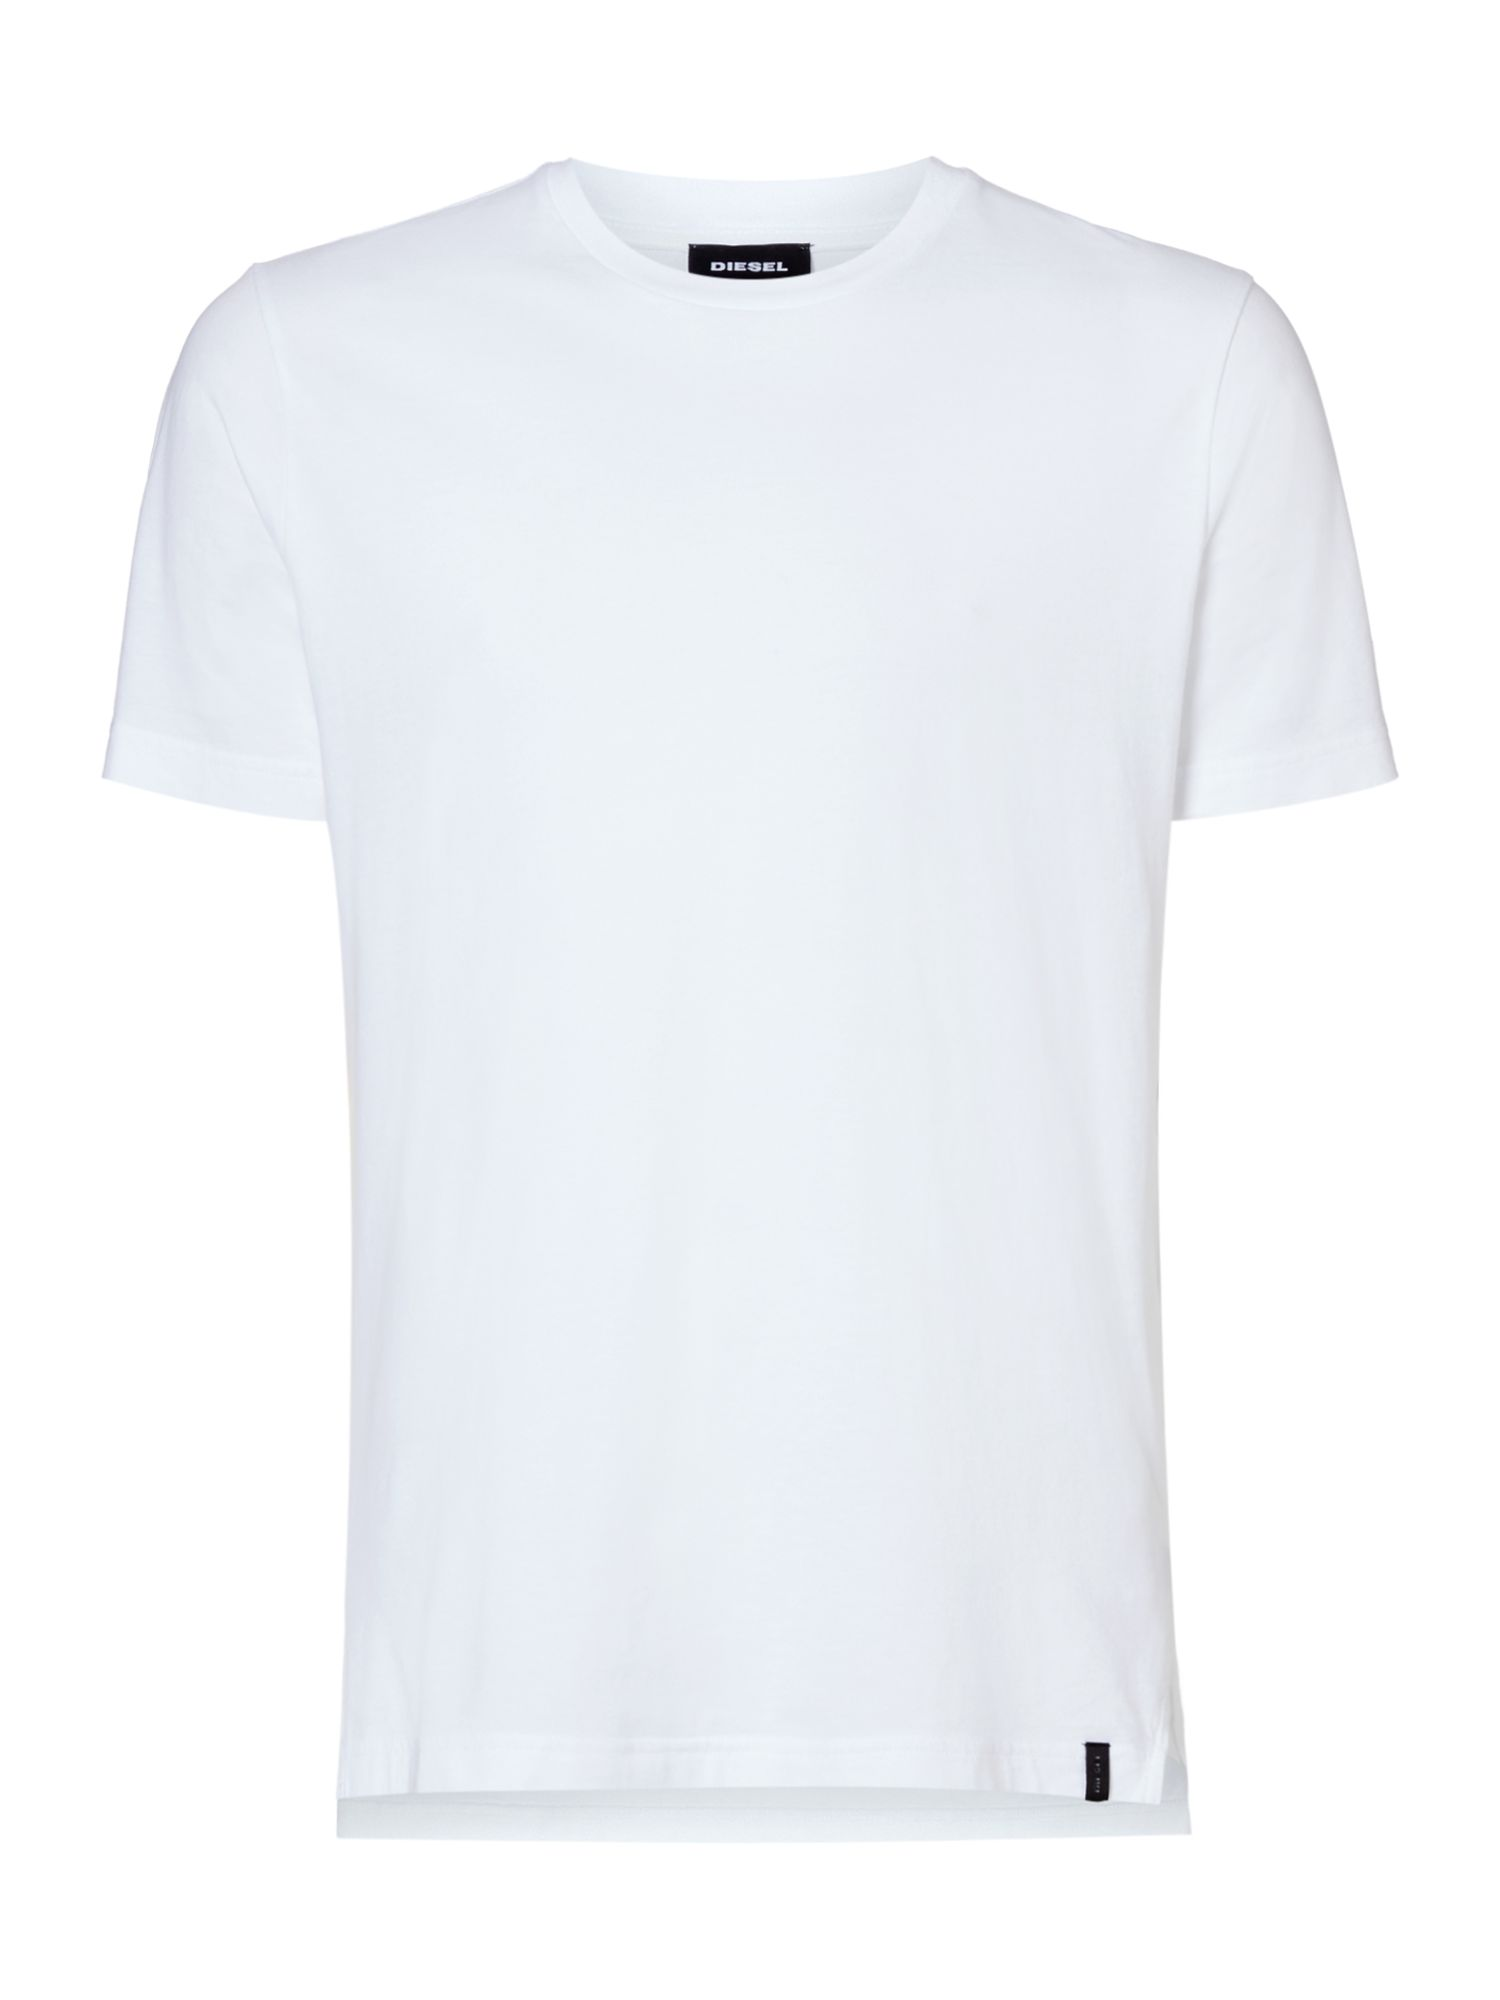 Men's Diesel Plain Crew Neck Tshirt, White